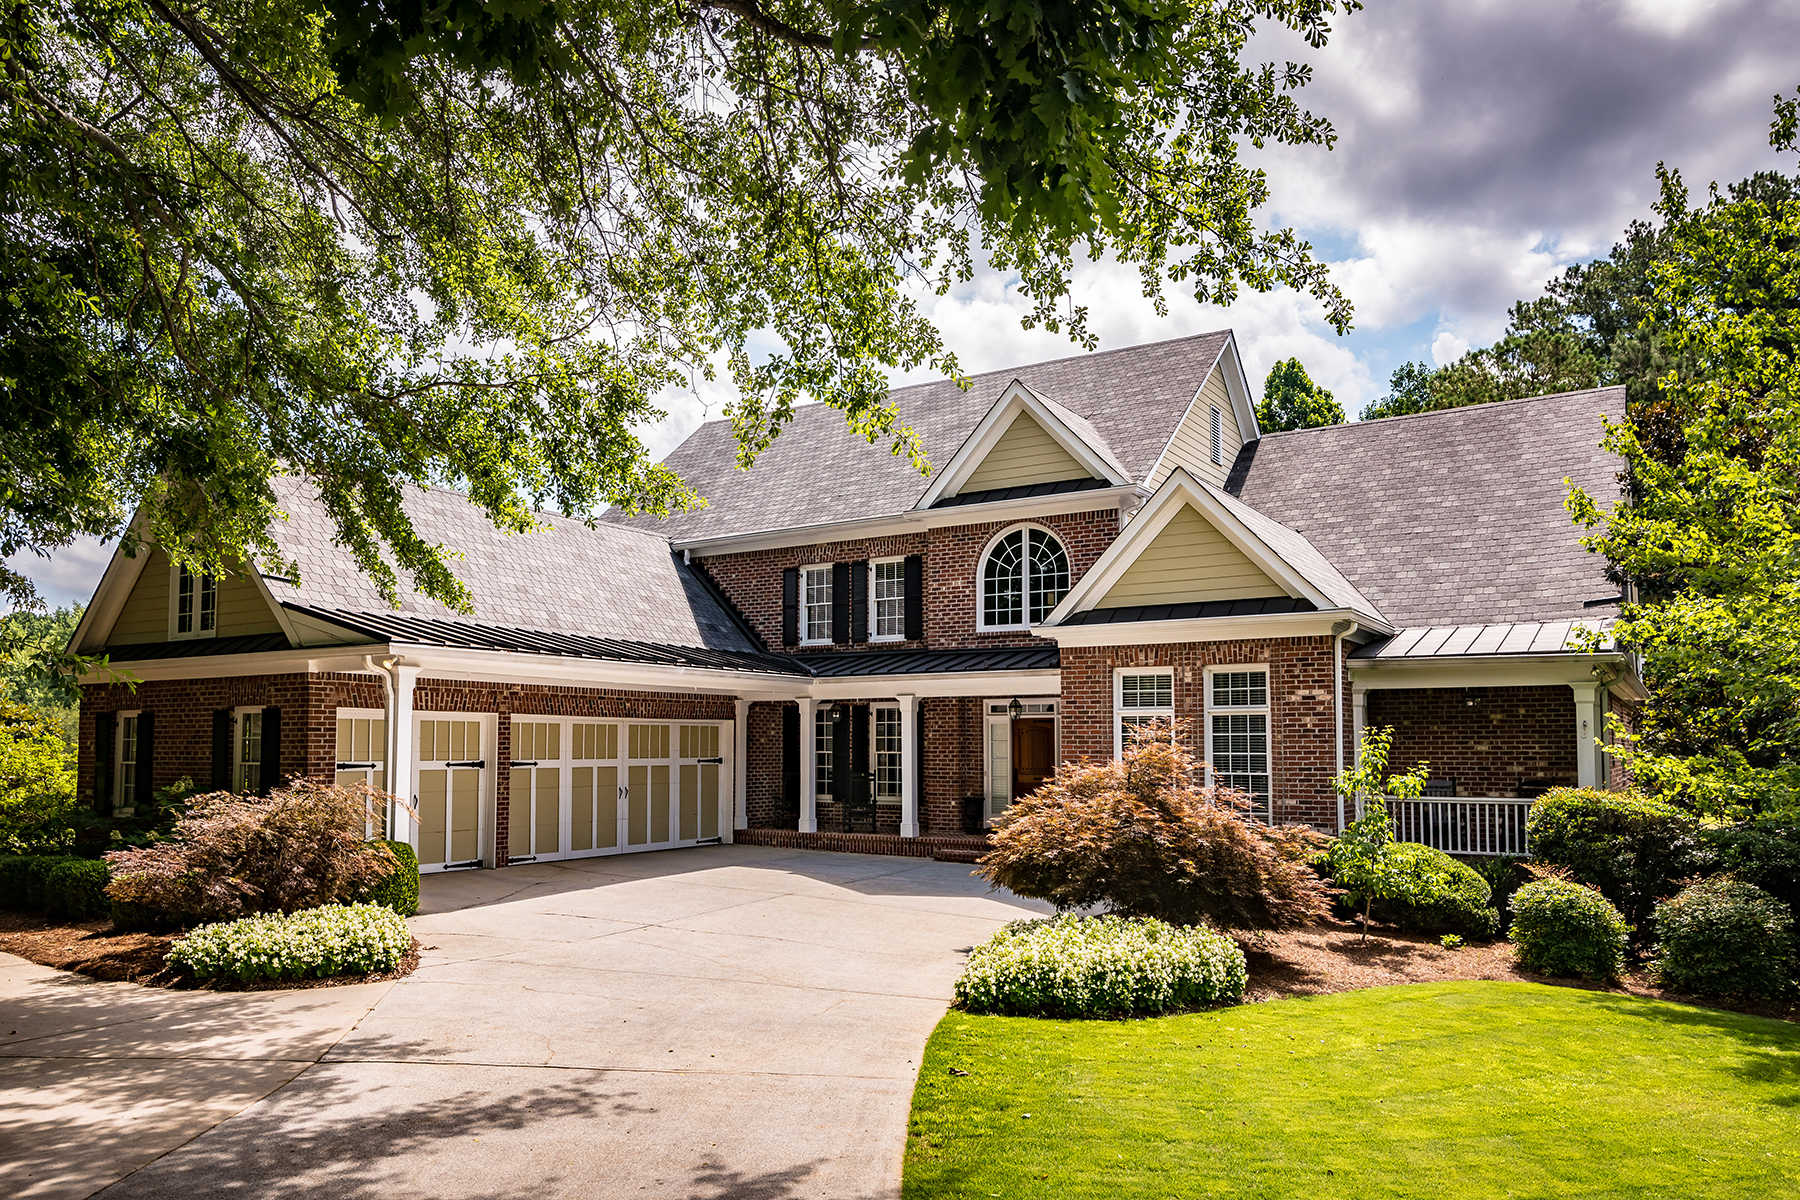 Single Family Home for Sale at Beautiful Home In Sought After Milton 785 Nettlebrook Lane Milton, Georgia 30004 United States